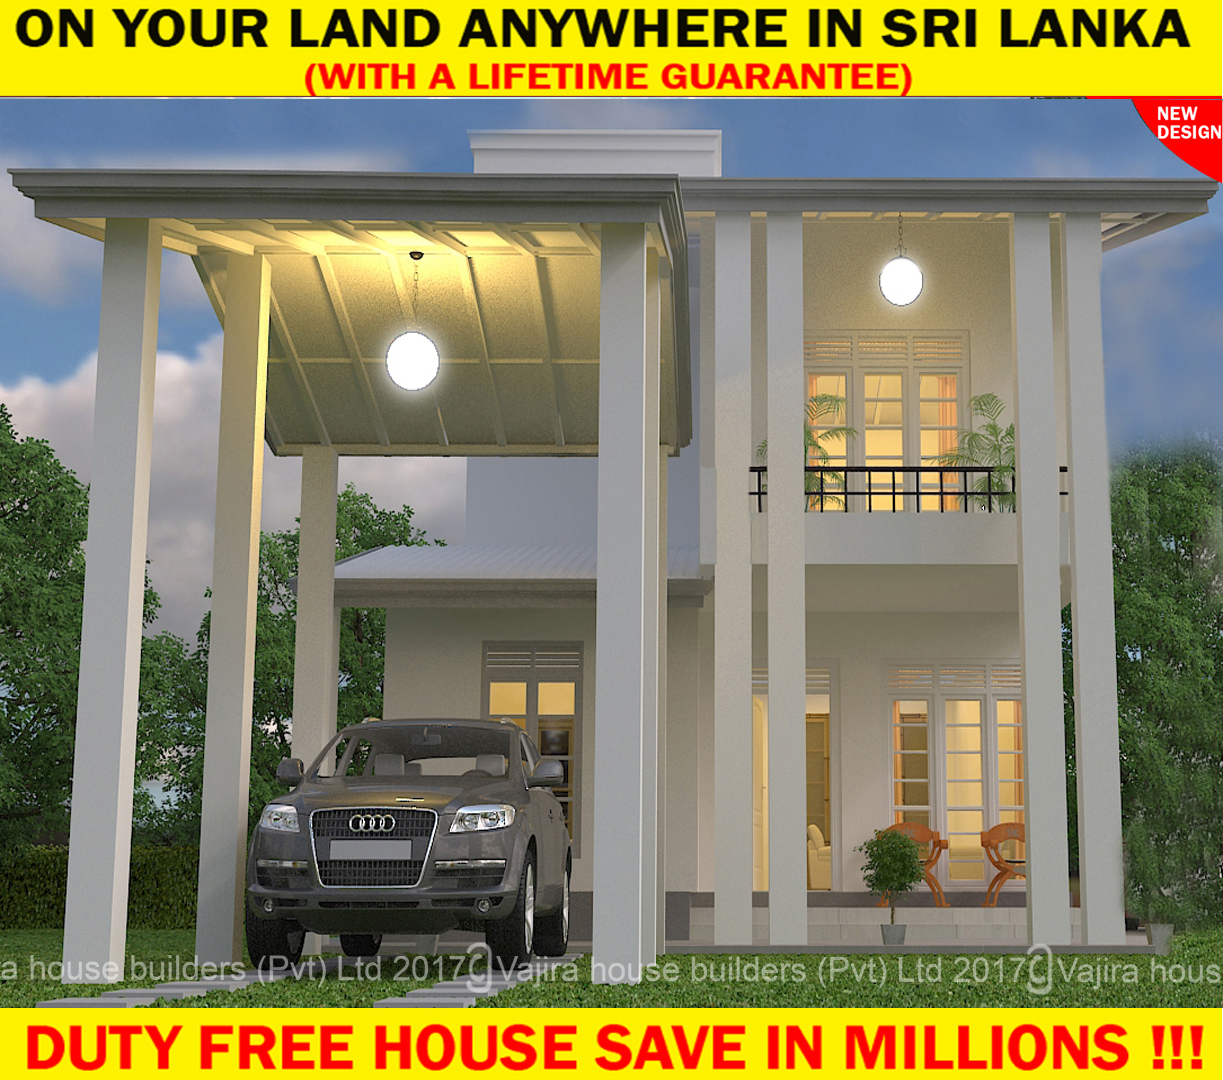 twostory Vajira House Builders Private Limited Best House